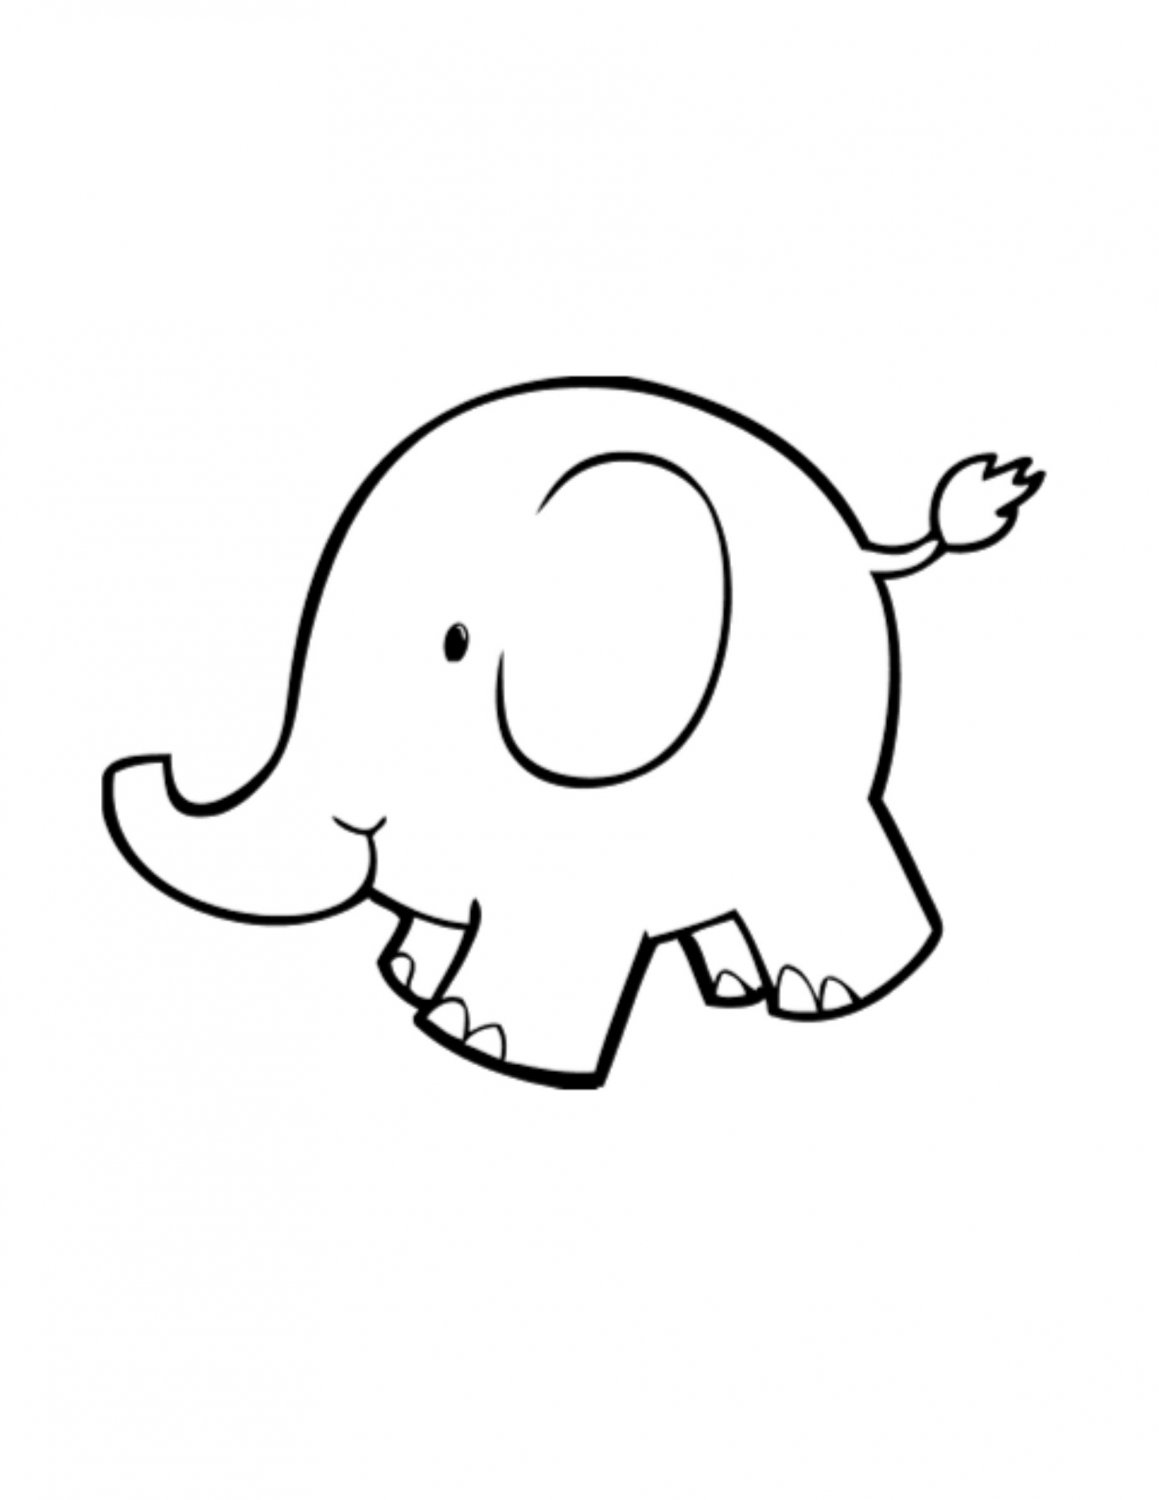 Free Elephant Outline Cliparts Download Free Clip Art